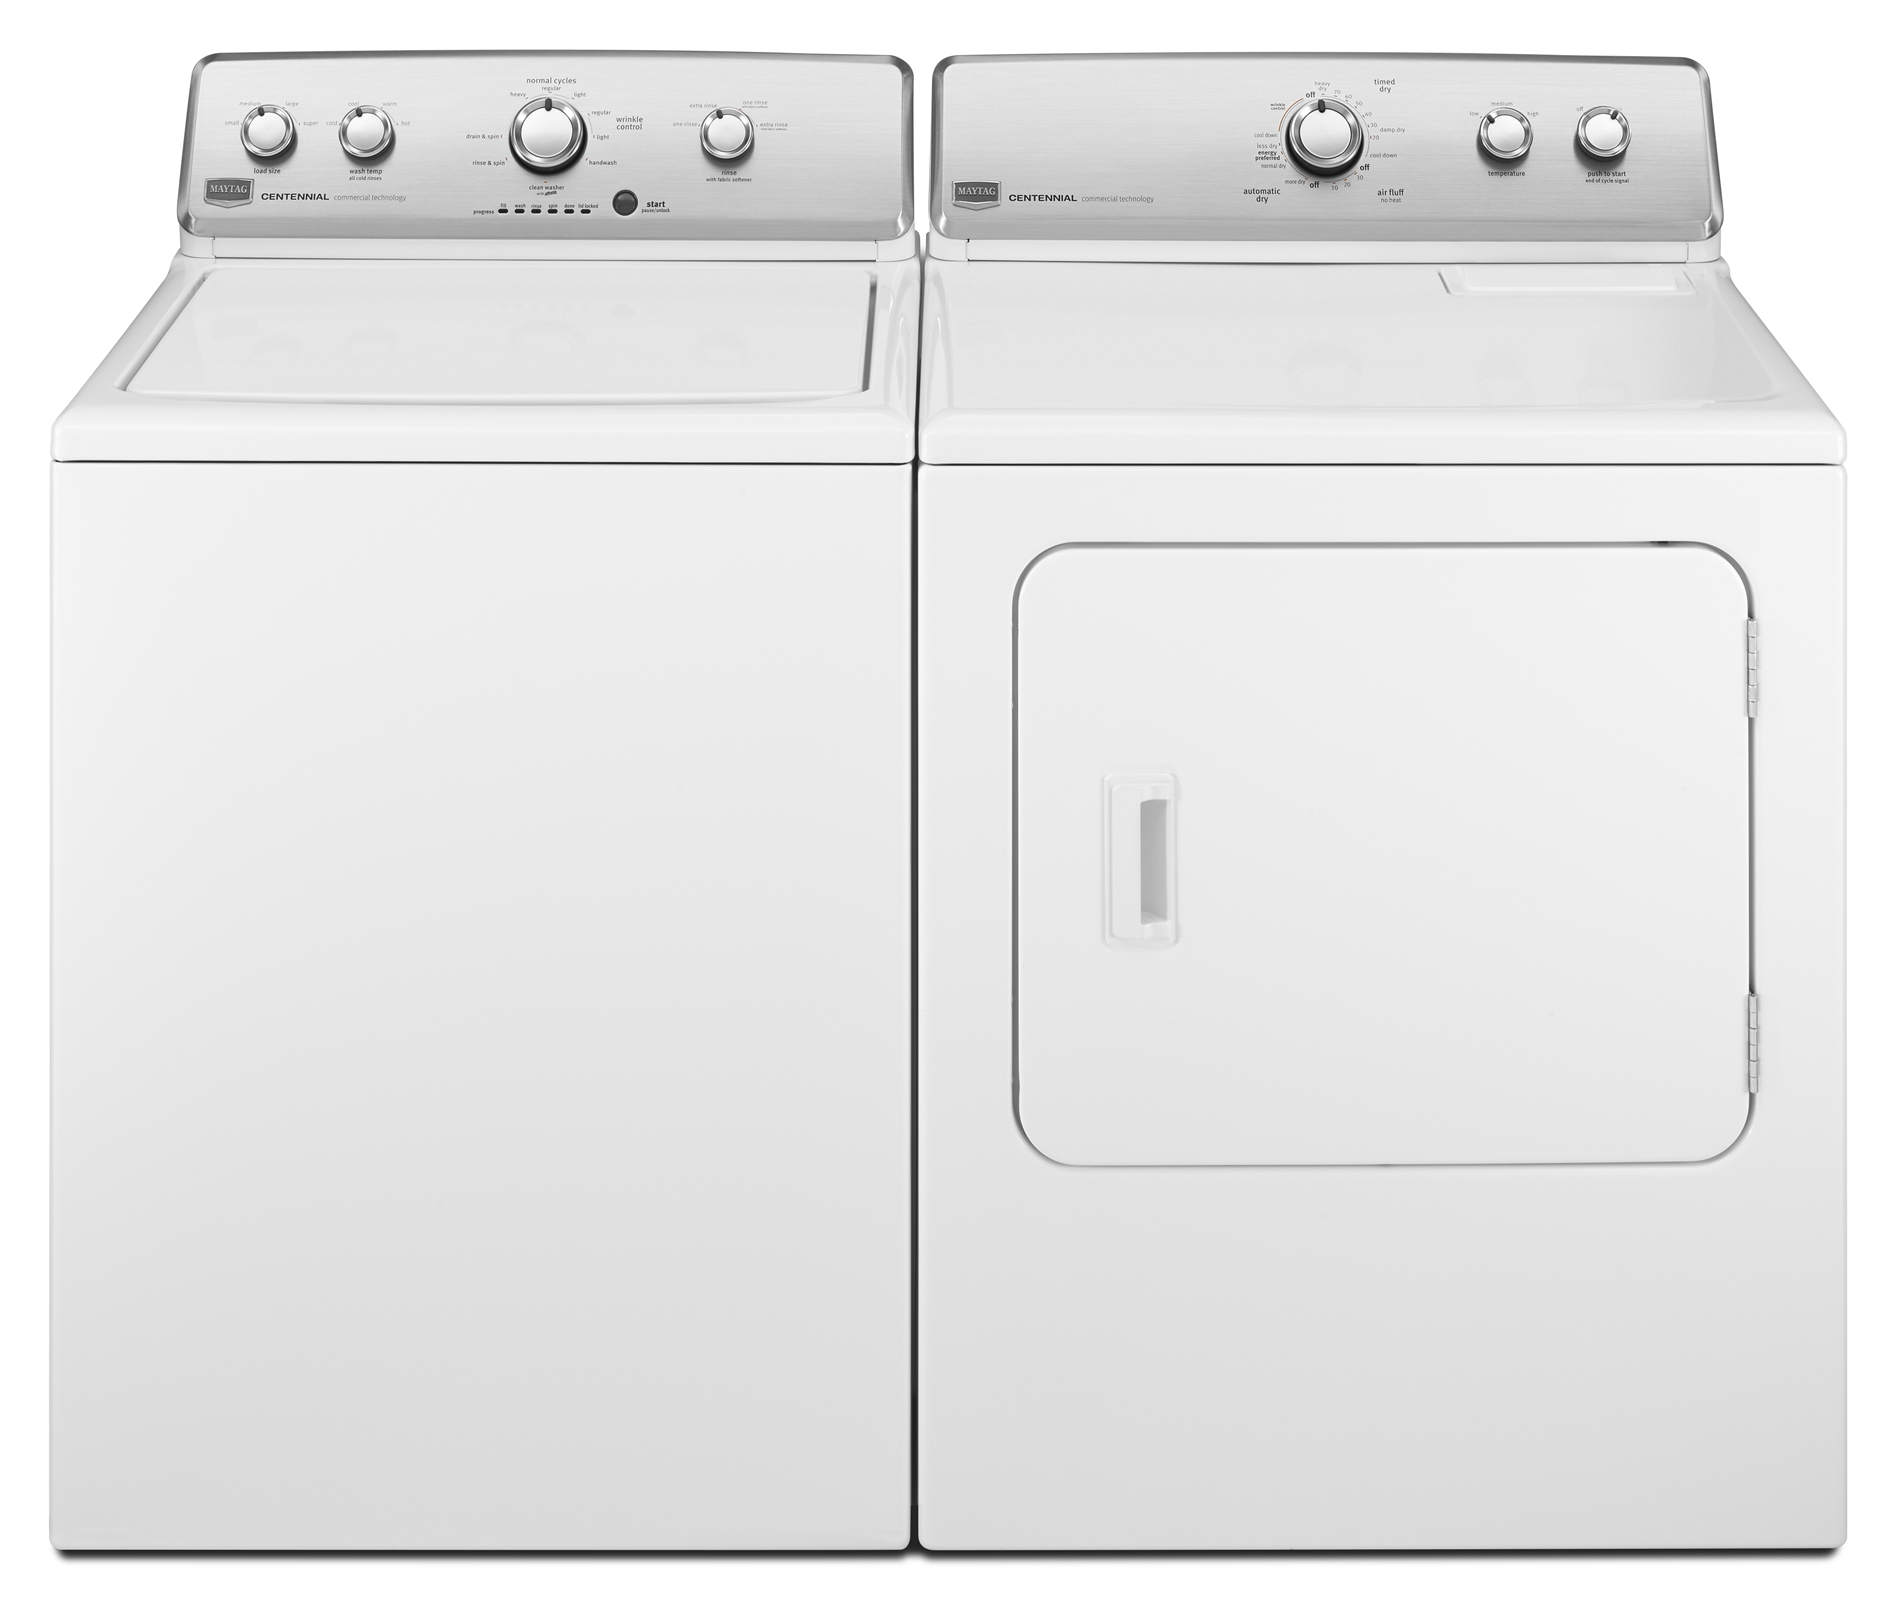 Maytag 7.0 cu. ft. Centennial® Gas Dryer w/ Wrinkle Control - White